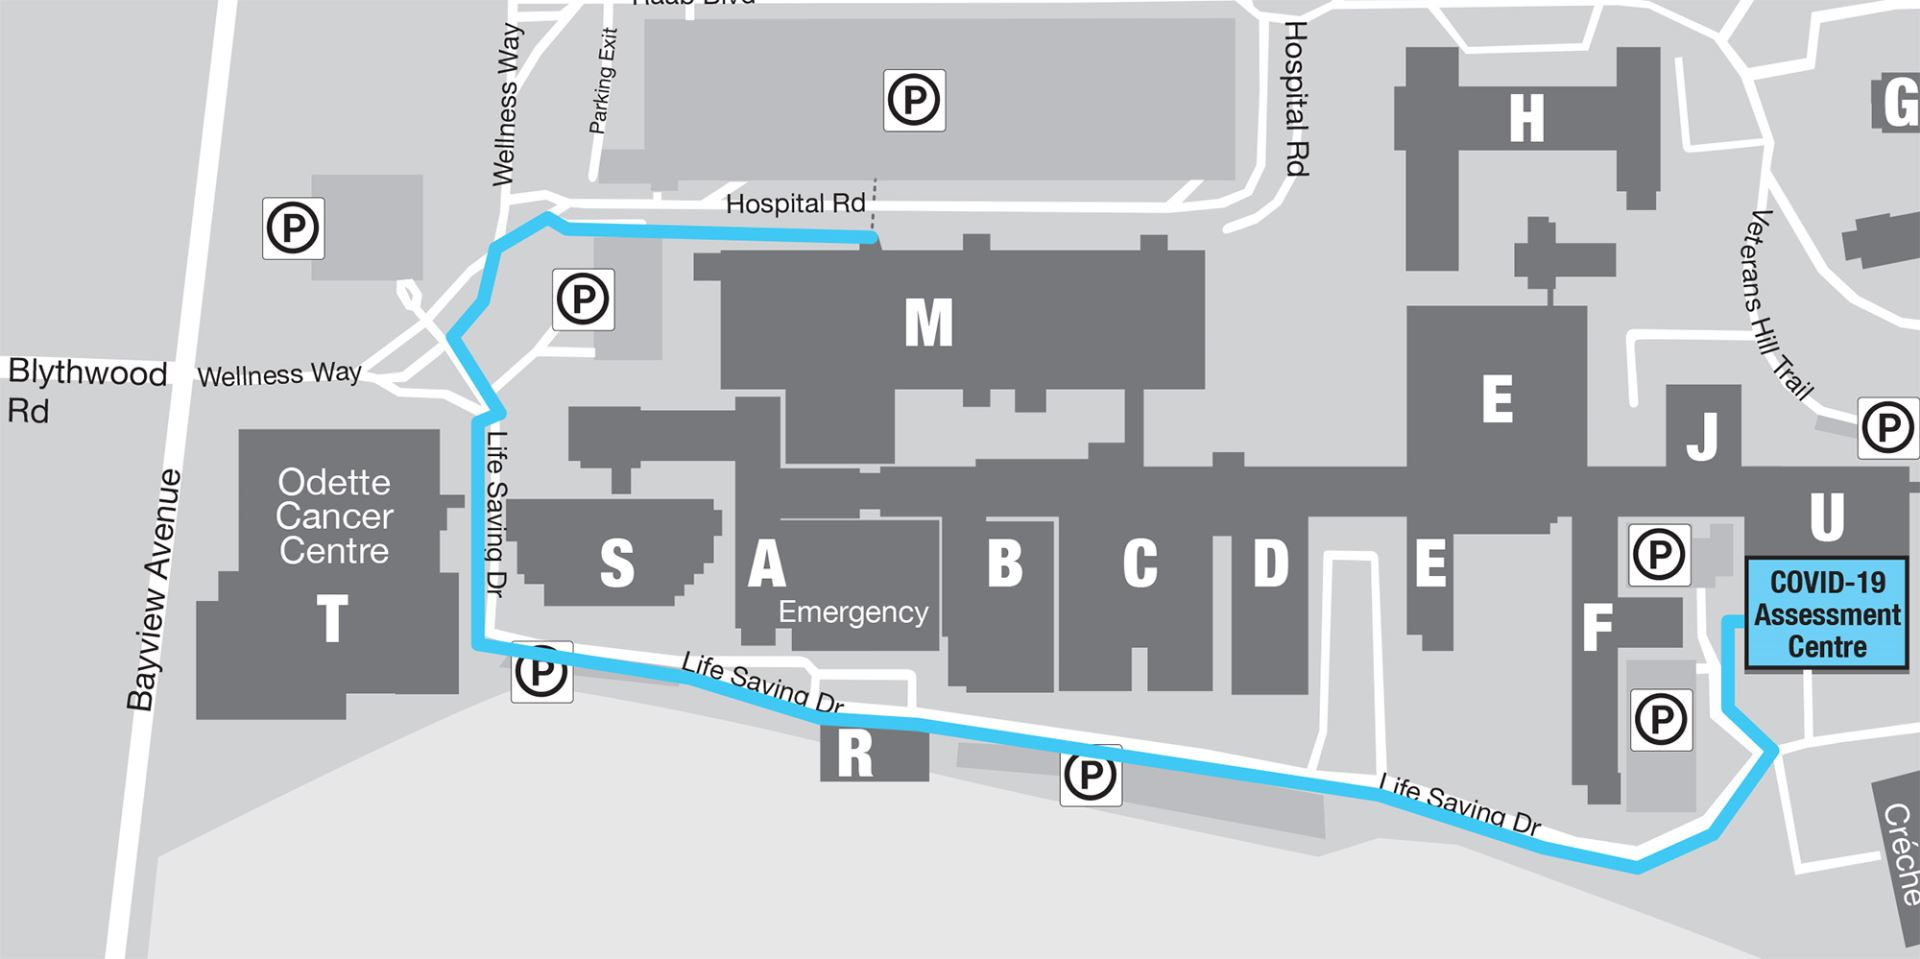 Map of COVID-19 assessment centre